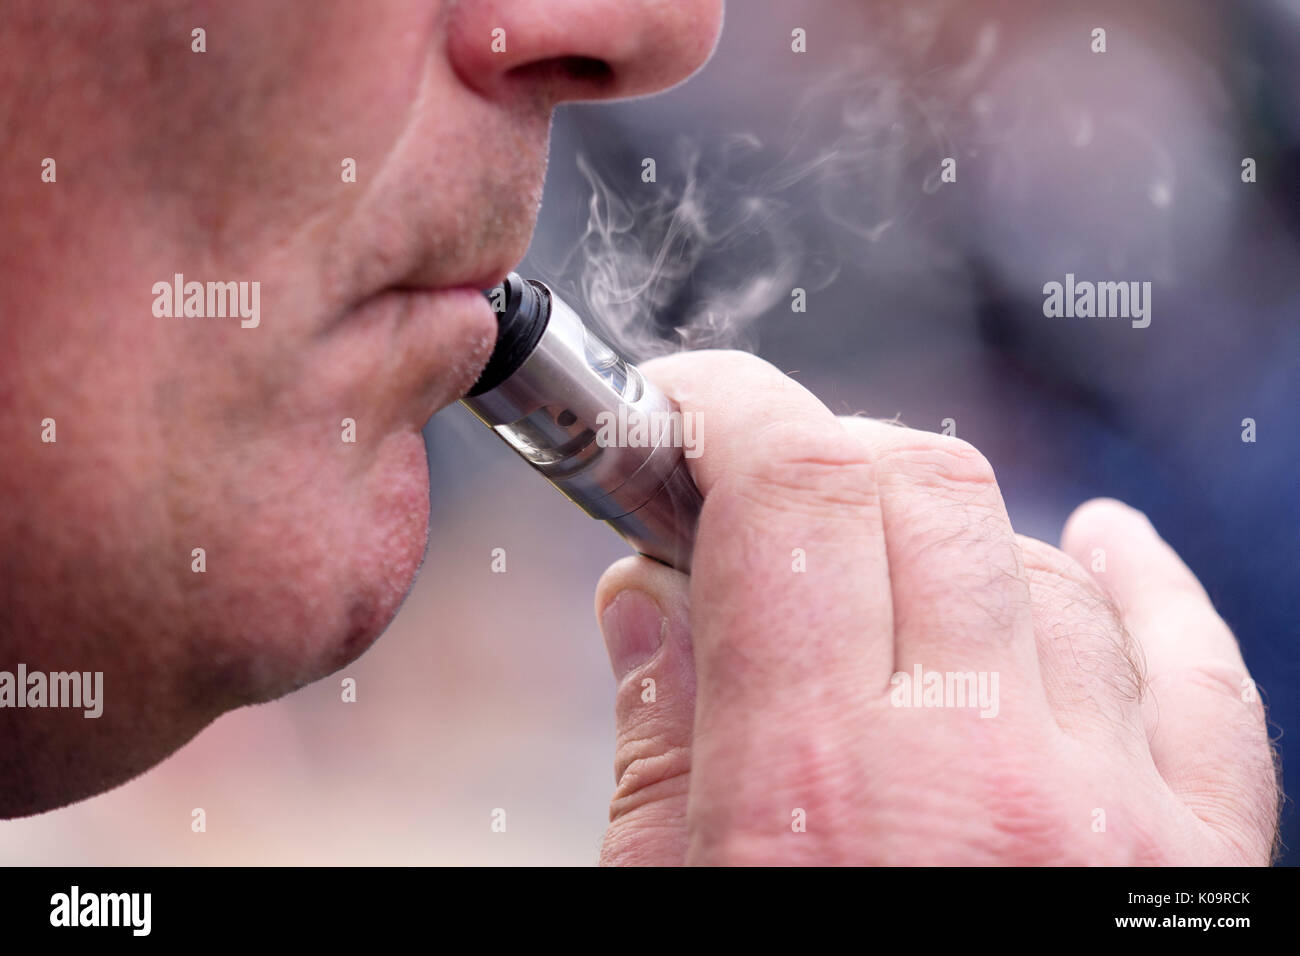 Man using an e-cigarette Stock Photo